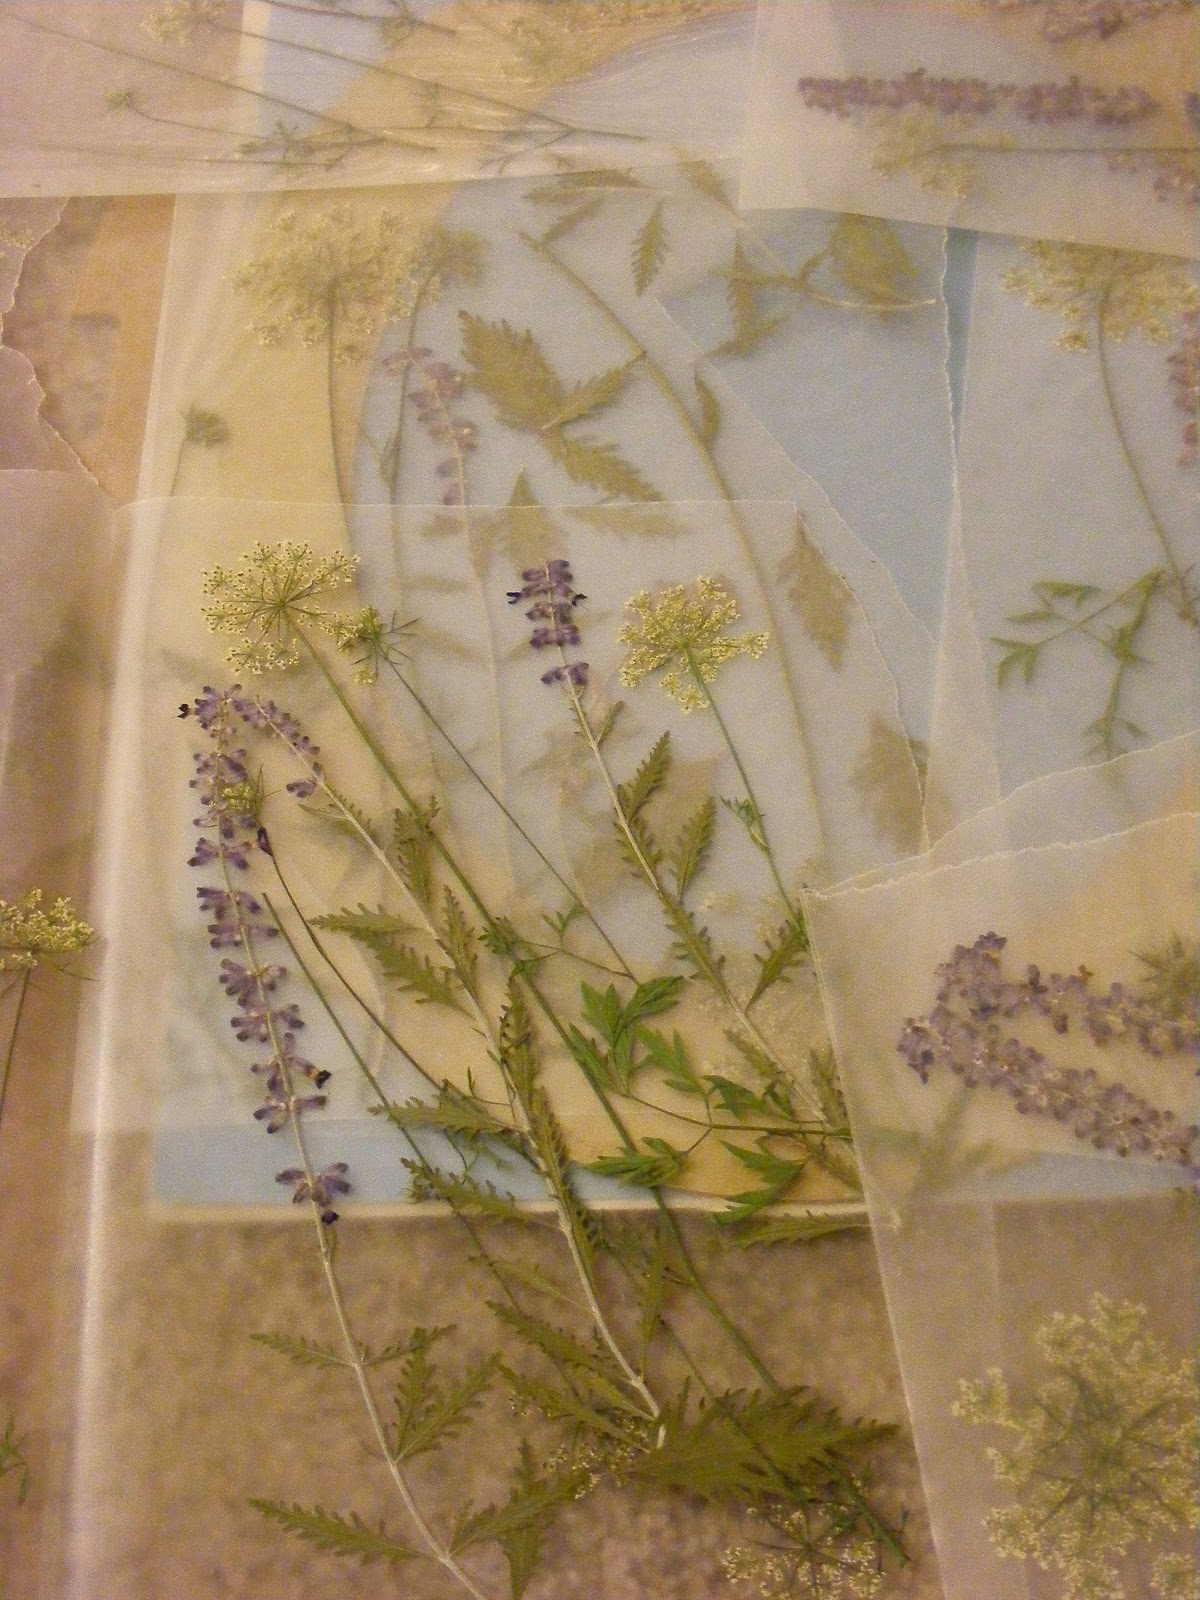 The dusty lane queen annes lace pressed flowers in a frame about a week later they were finely pressed and ready to use i drew inspiration from an online how to heres a link mightylinksfo